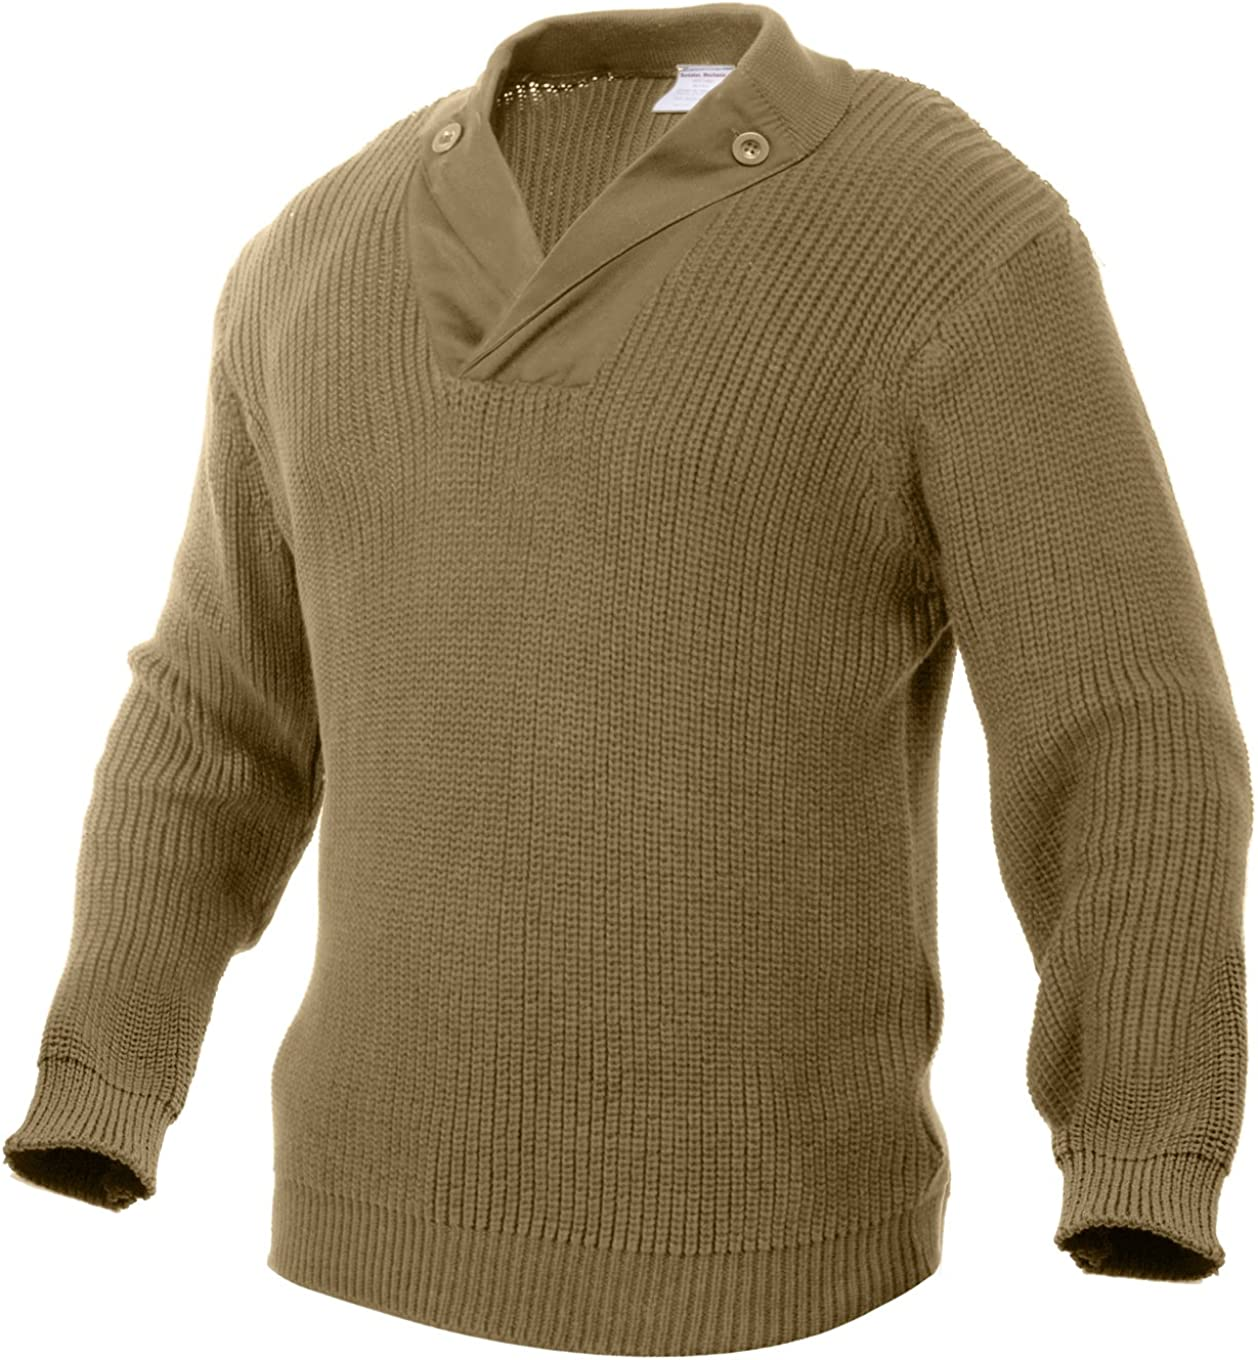 Men's Vintage Sweaters, Retro Jumpers 1920s to 1980s Rothco WWII Vintage Mechanics Sweater $55.99 AT vintagedancer.com